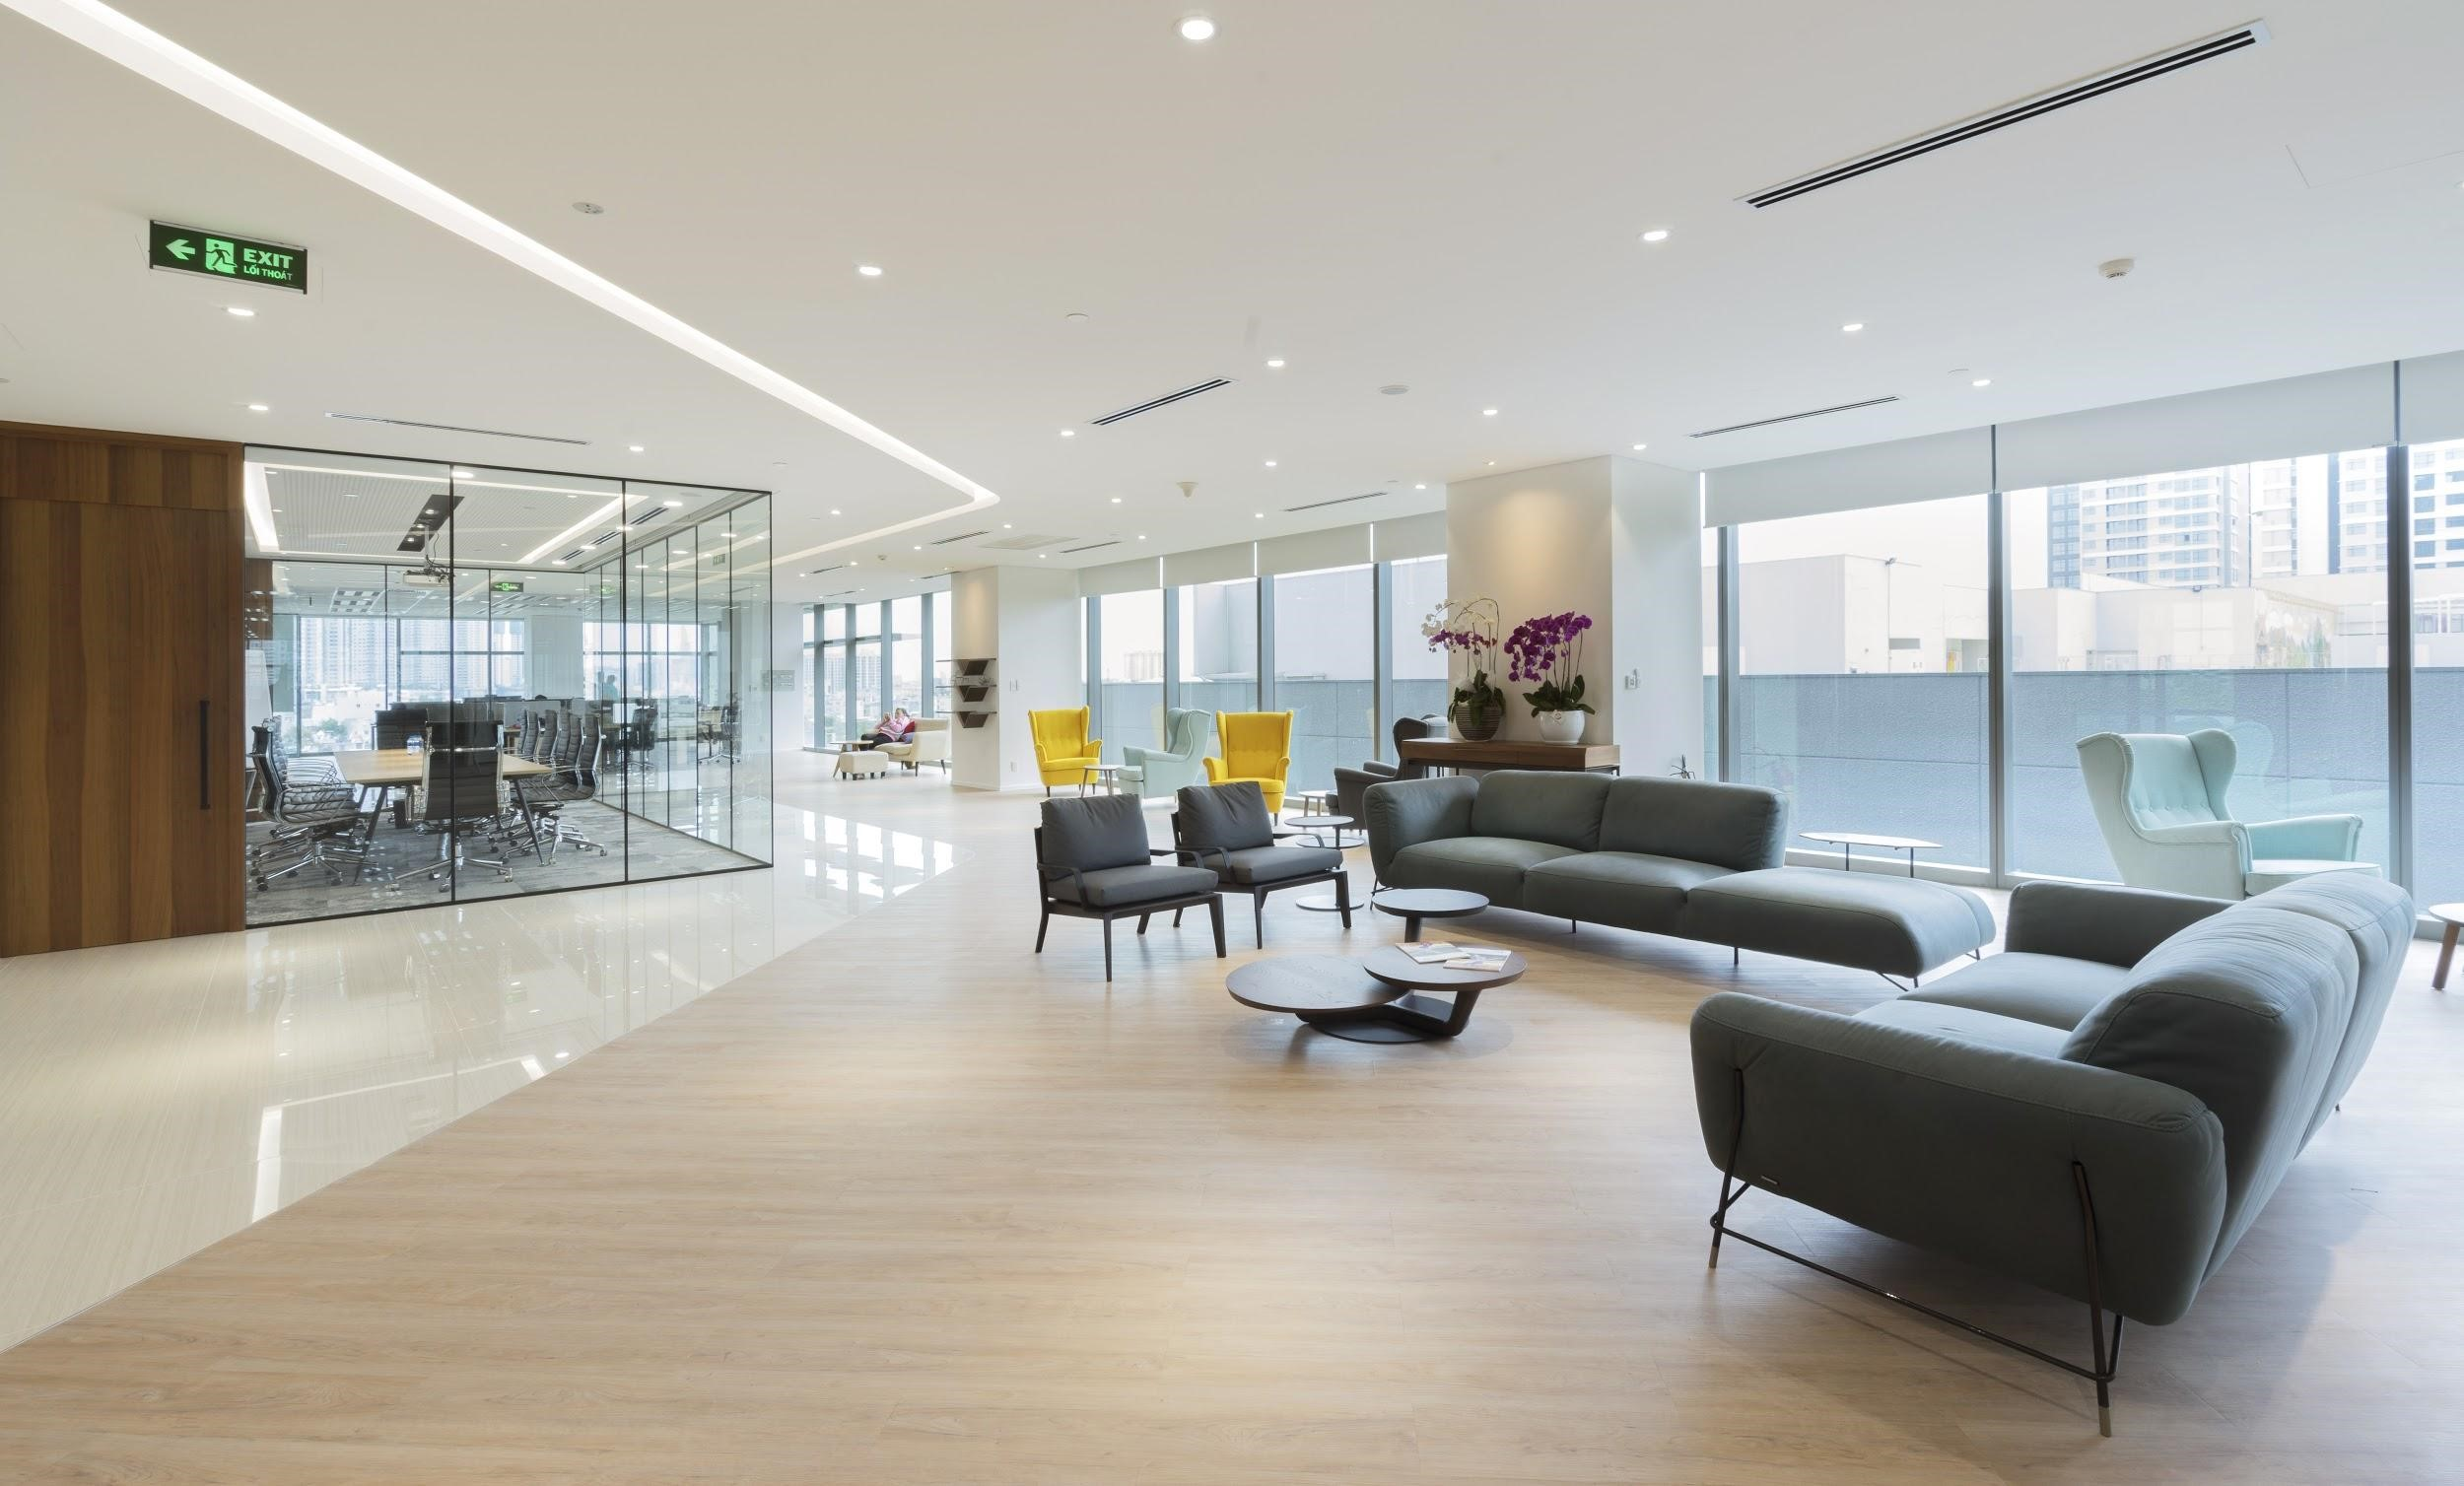 A multi-functional open space serving both staff brainstorming and customer greeting